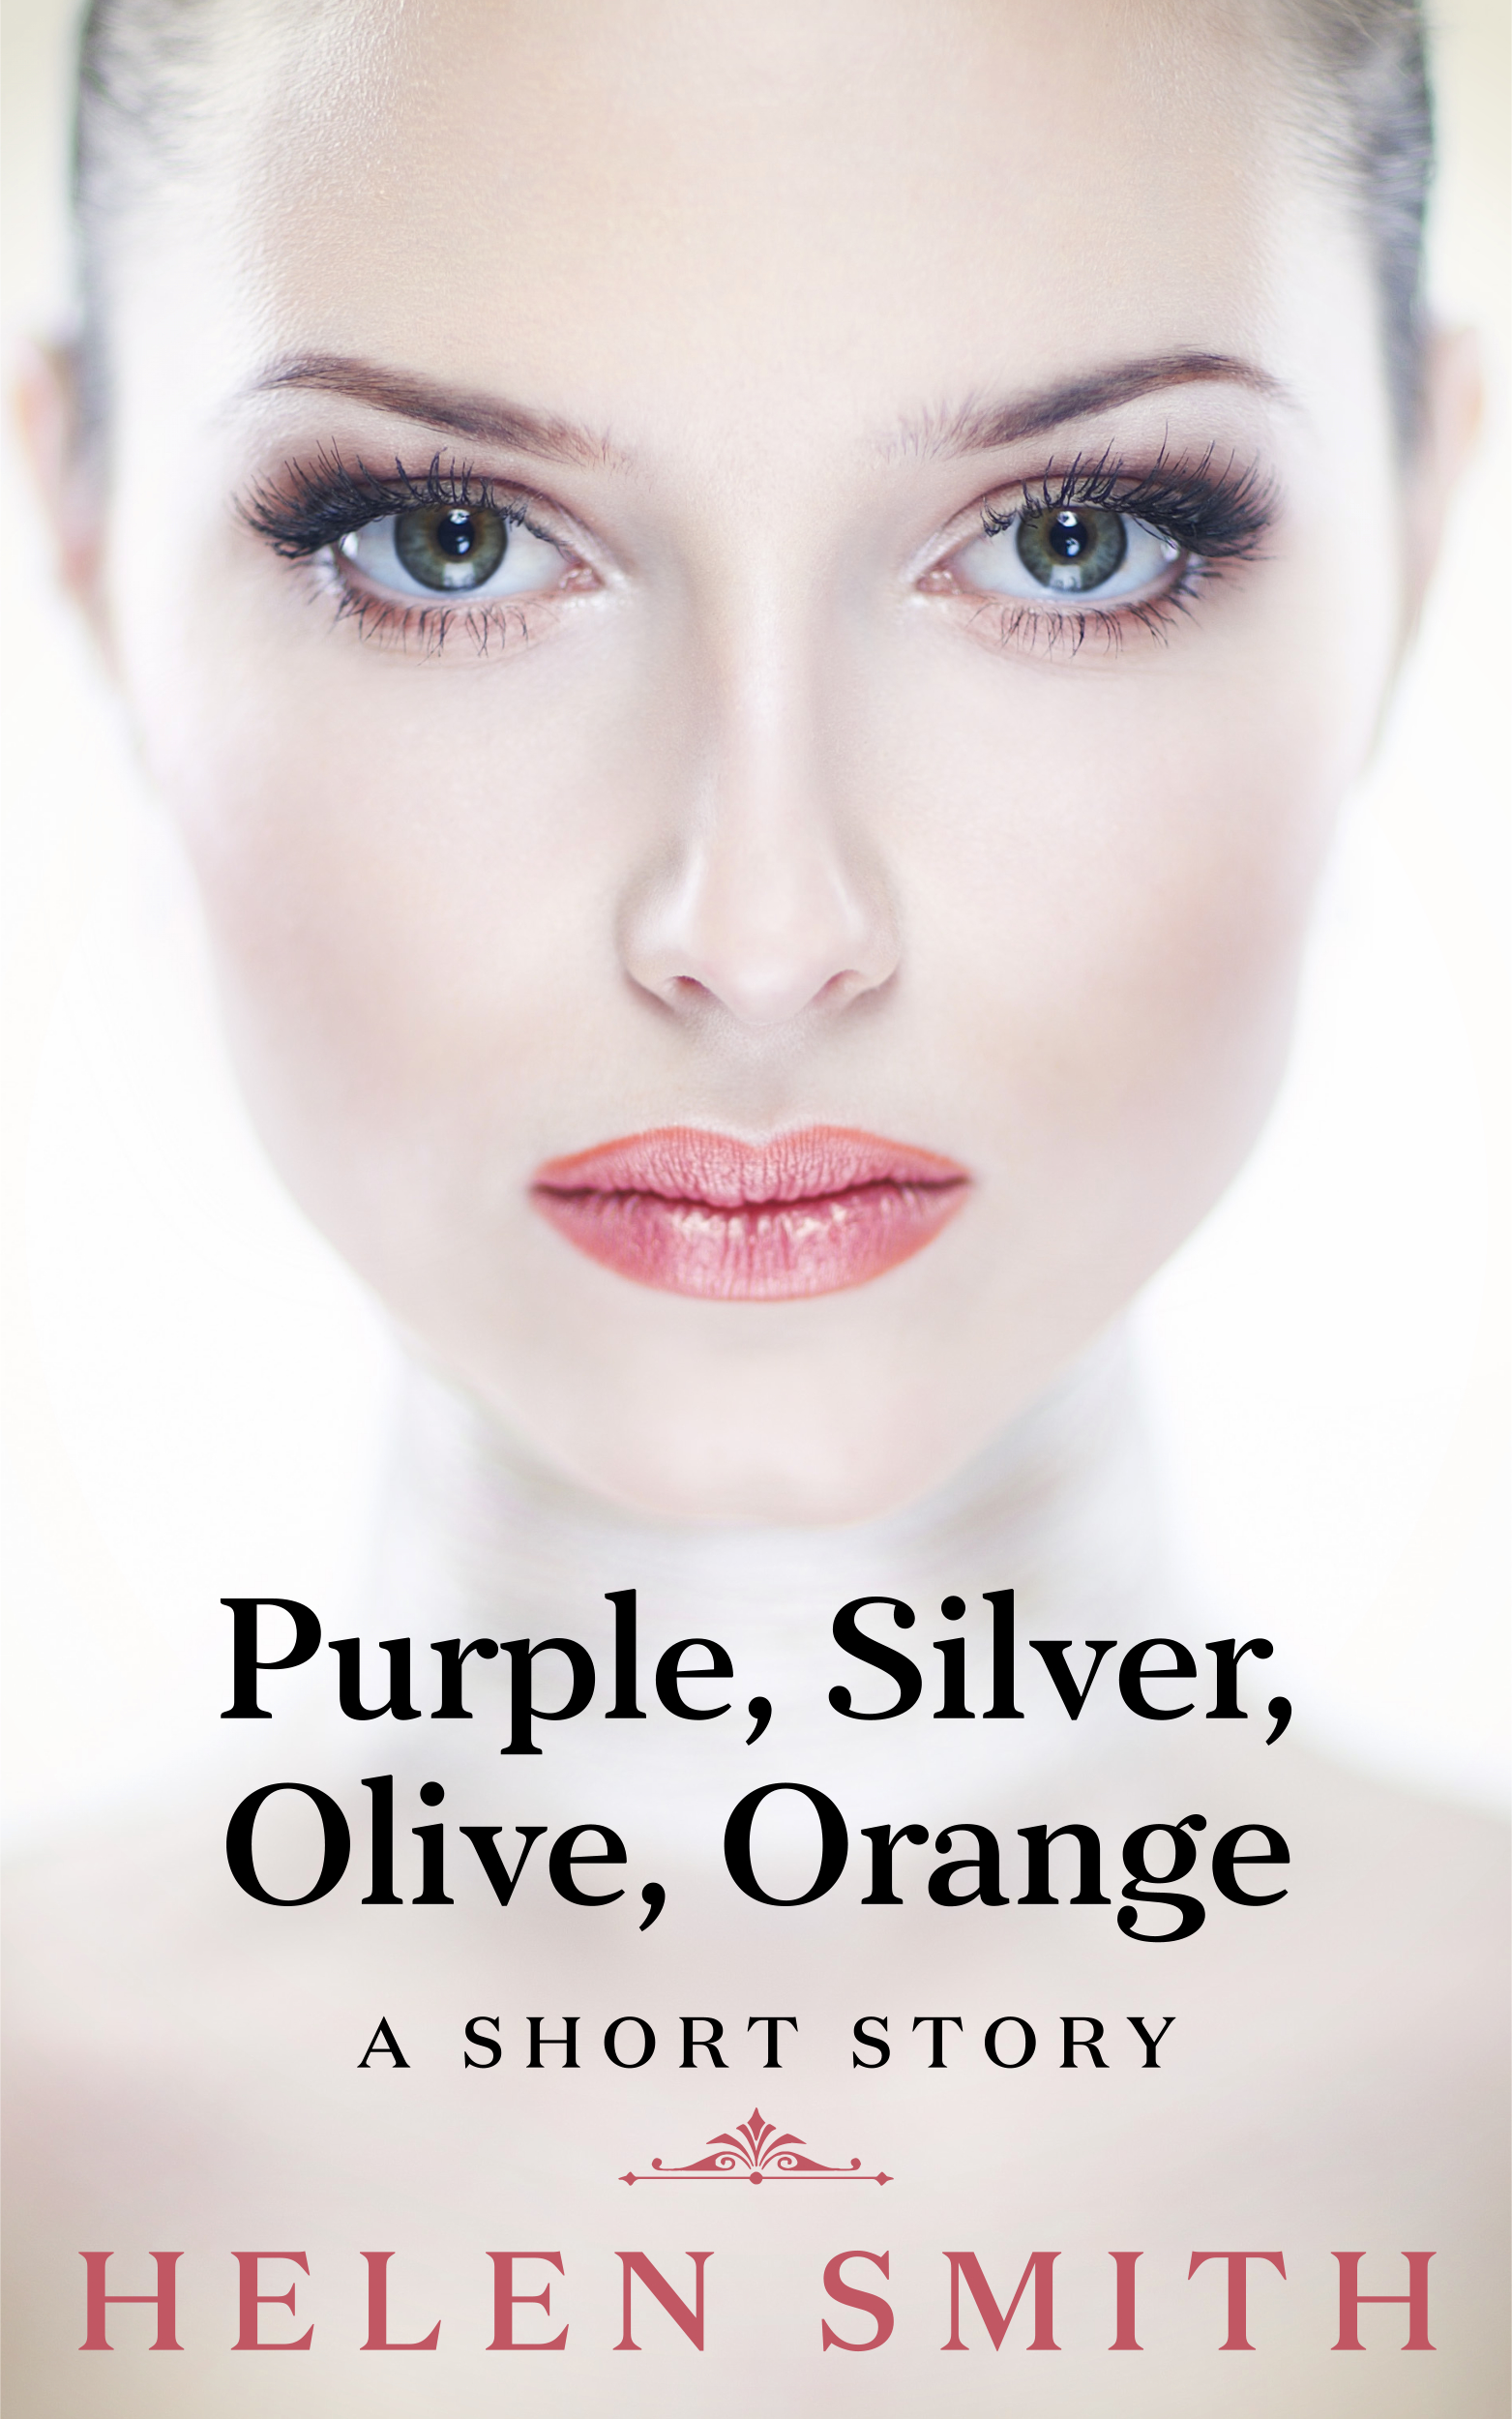 Purple Silver Olive Orange by Helen Smith